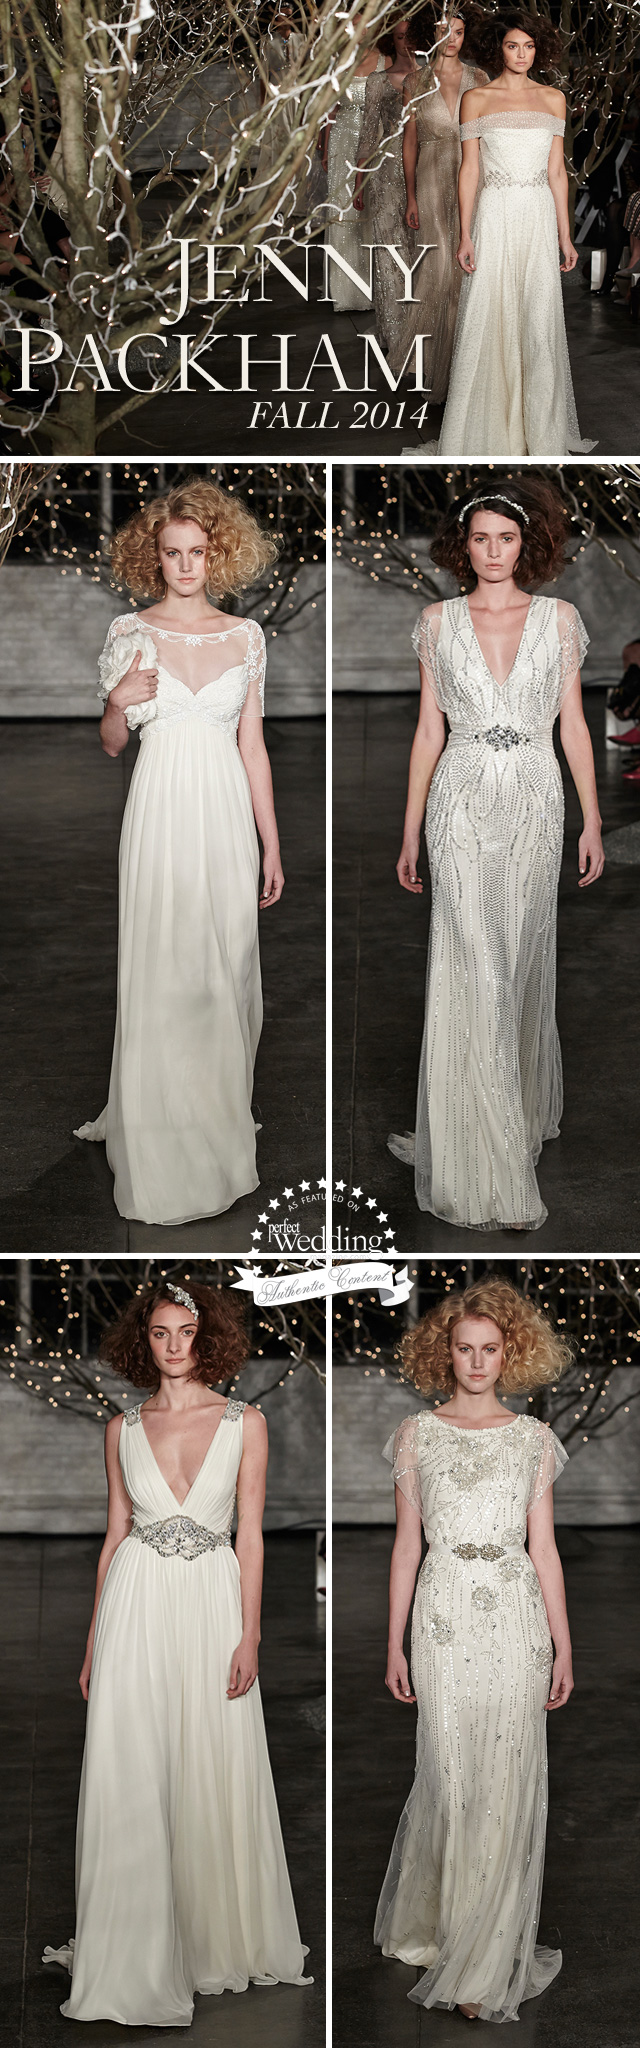 Jenny Packham, 2014 Bridal Collection, Perfect Wedding Magazine, Bridal Fashion, Bridal FashionWeek, New York